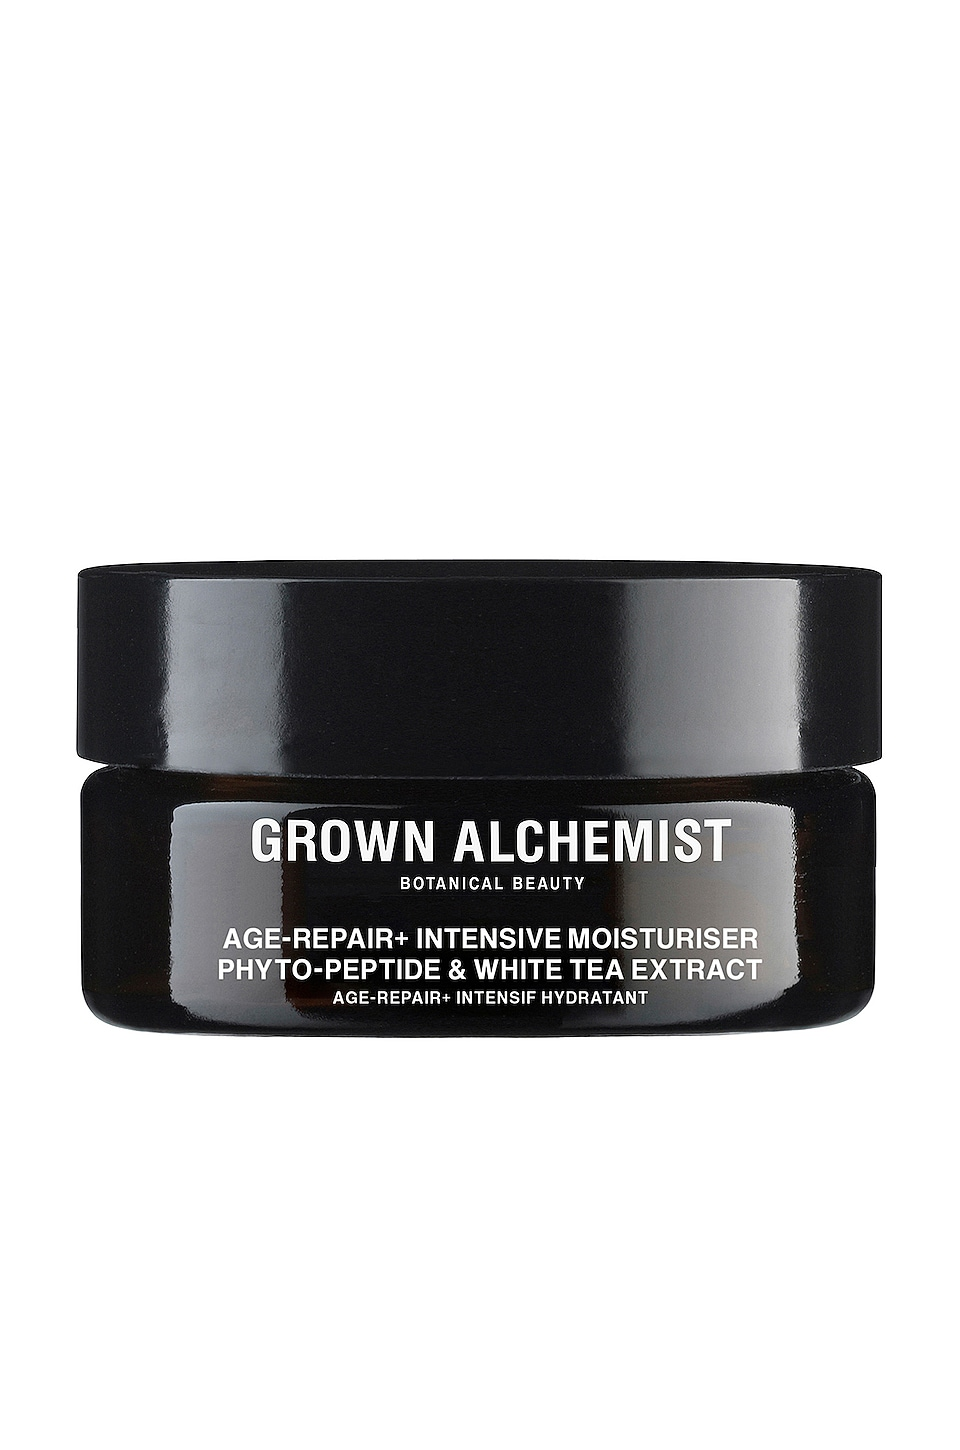 Grown Alchemist Age-Repair + Intensive Moisturizer in White Tea & Phyto-Peptide